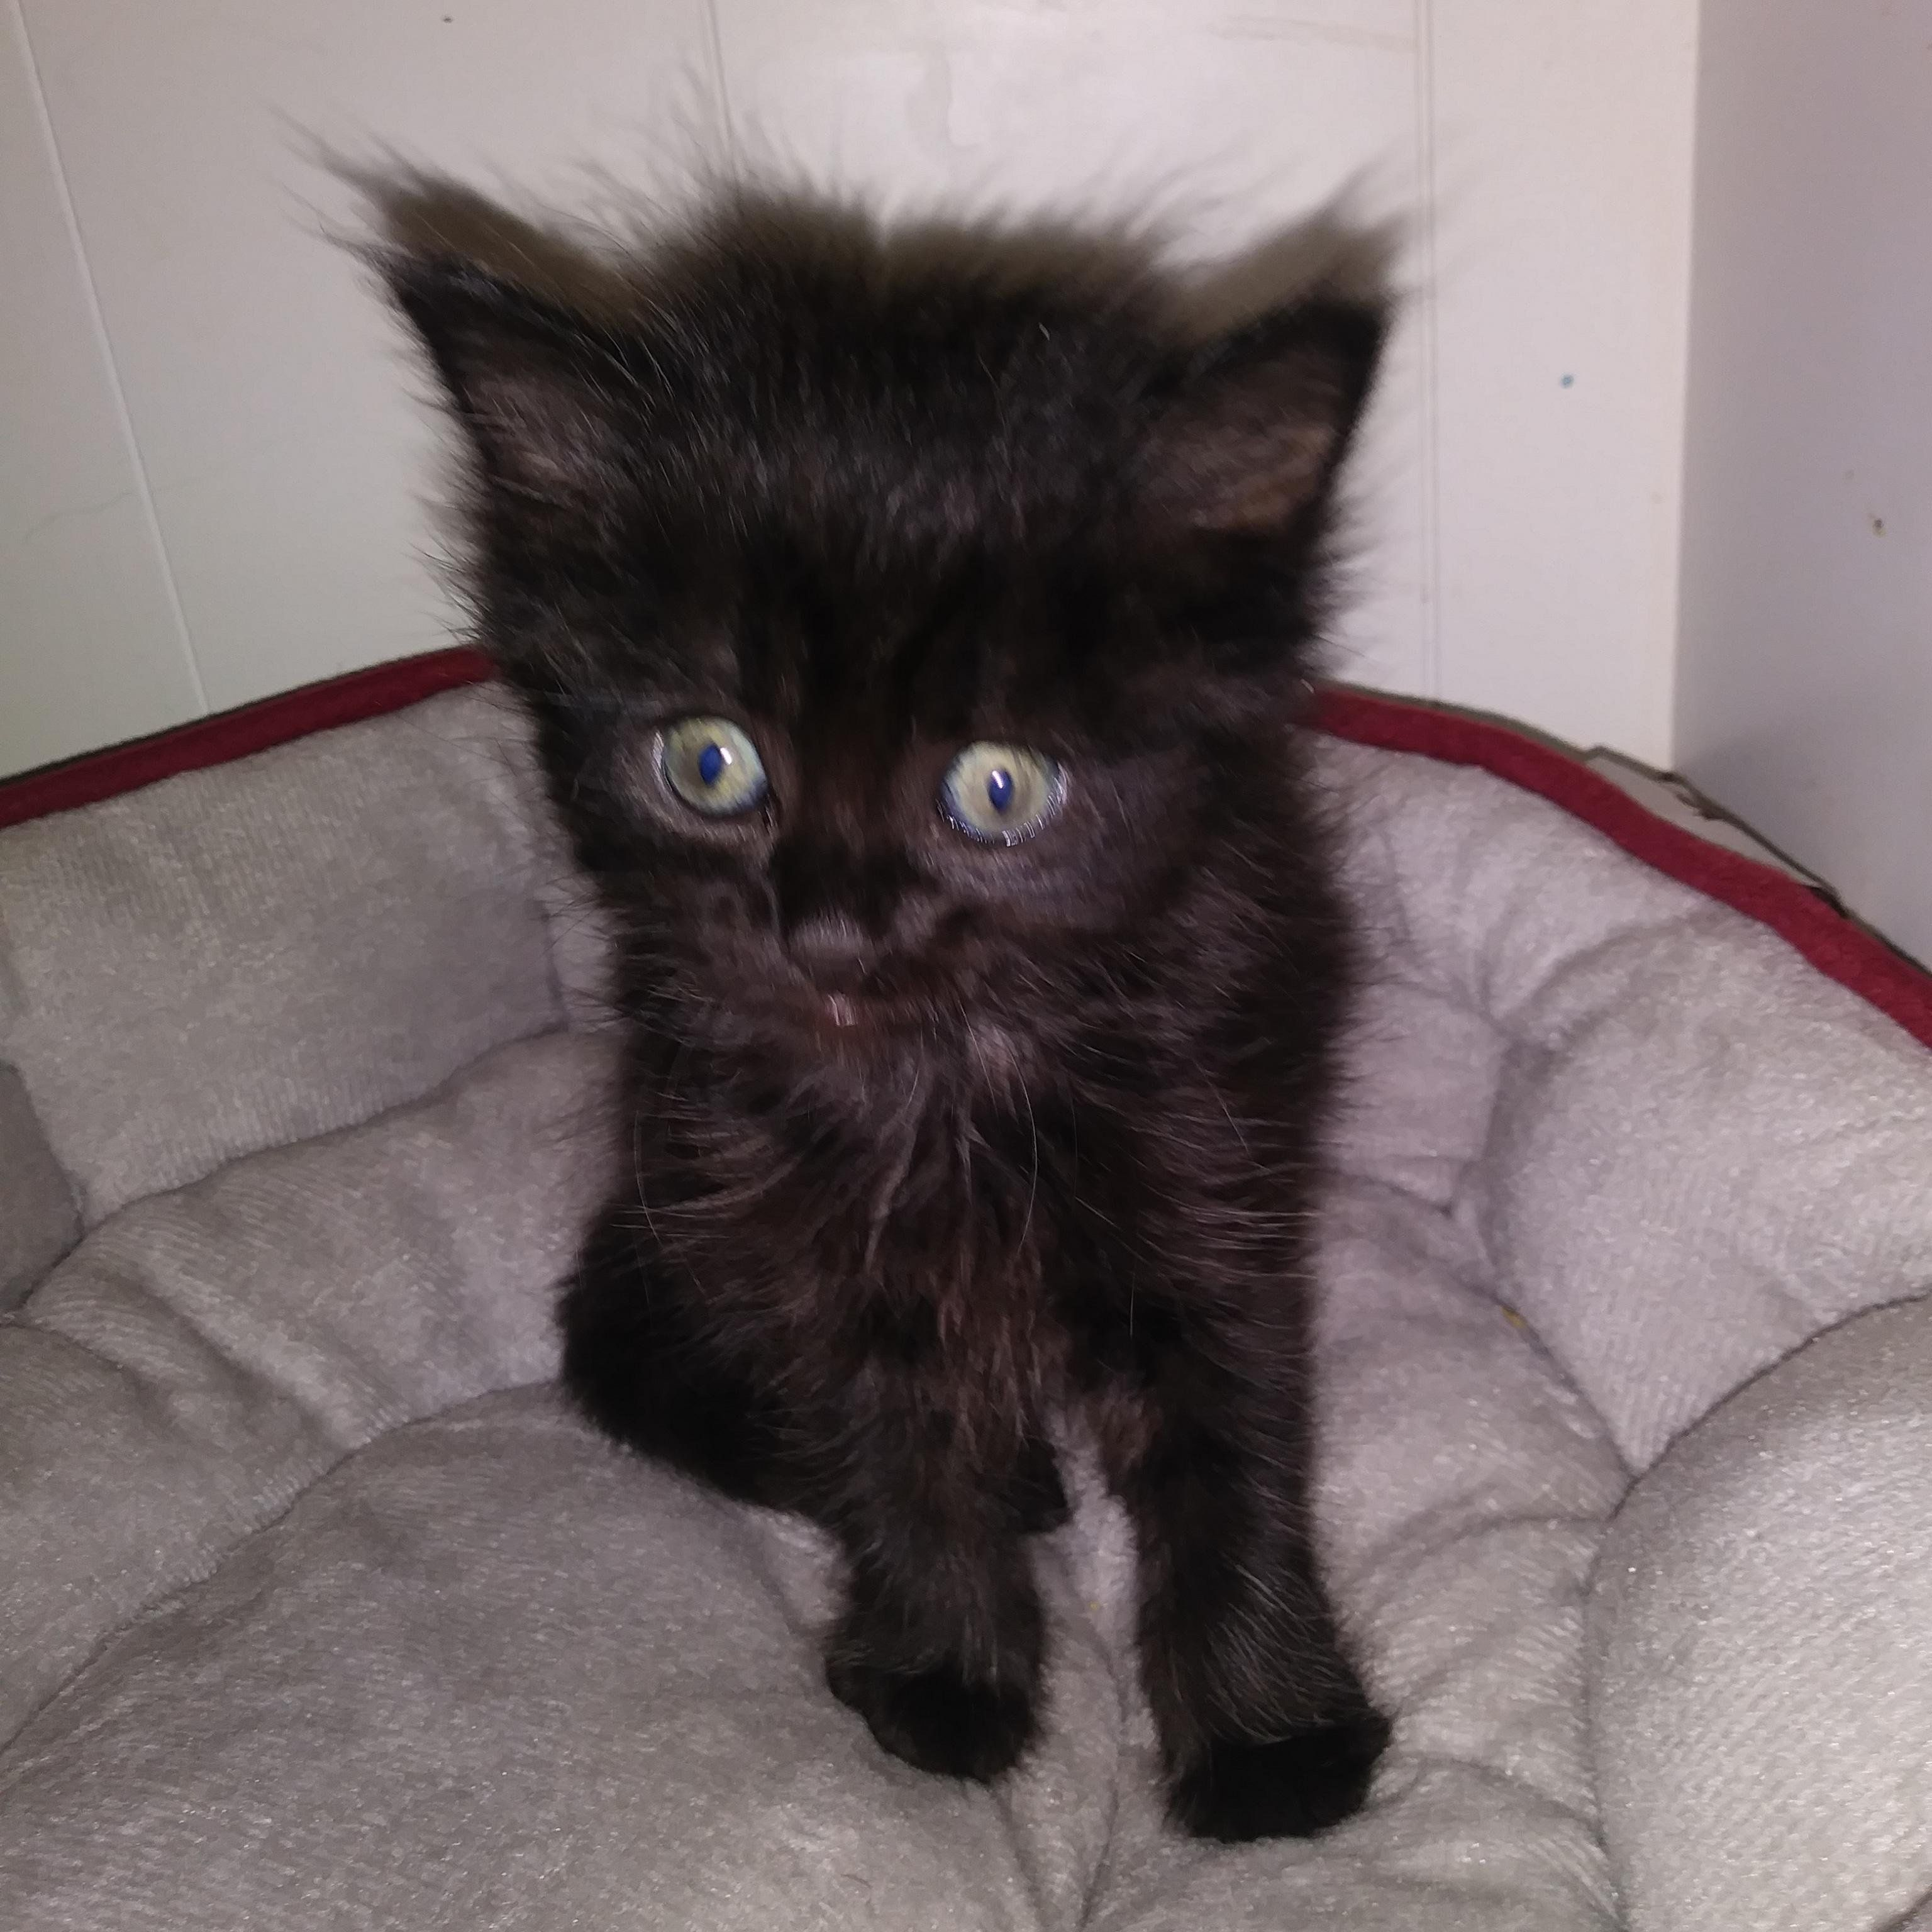 Does Anyone Know What Breed My Kitten Is Meow Moe Fluffy Cat Baby Kittens Kittens Cutest